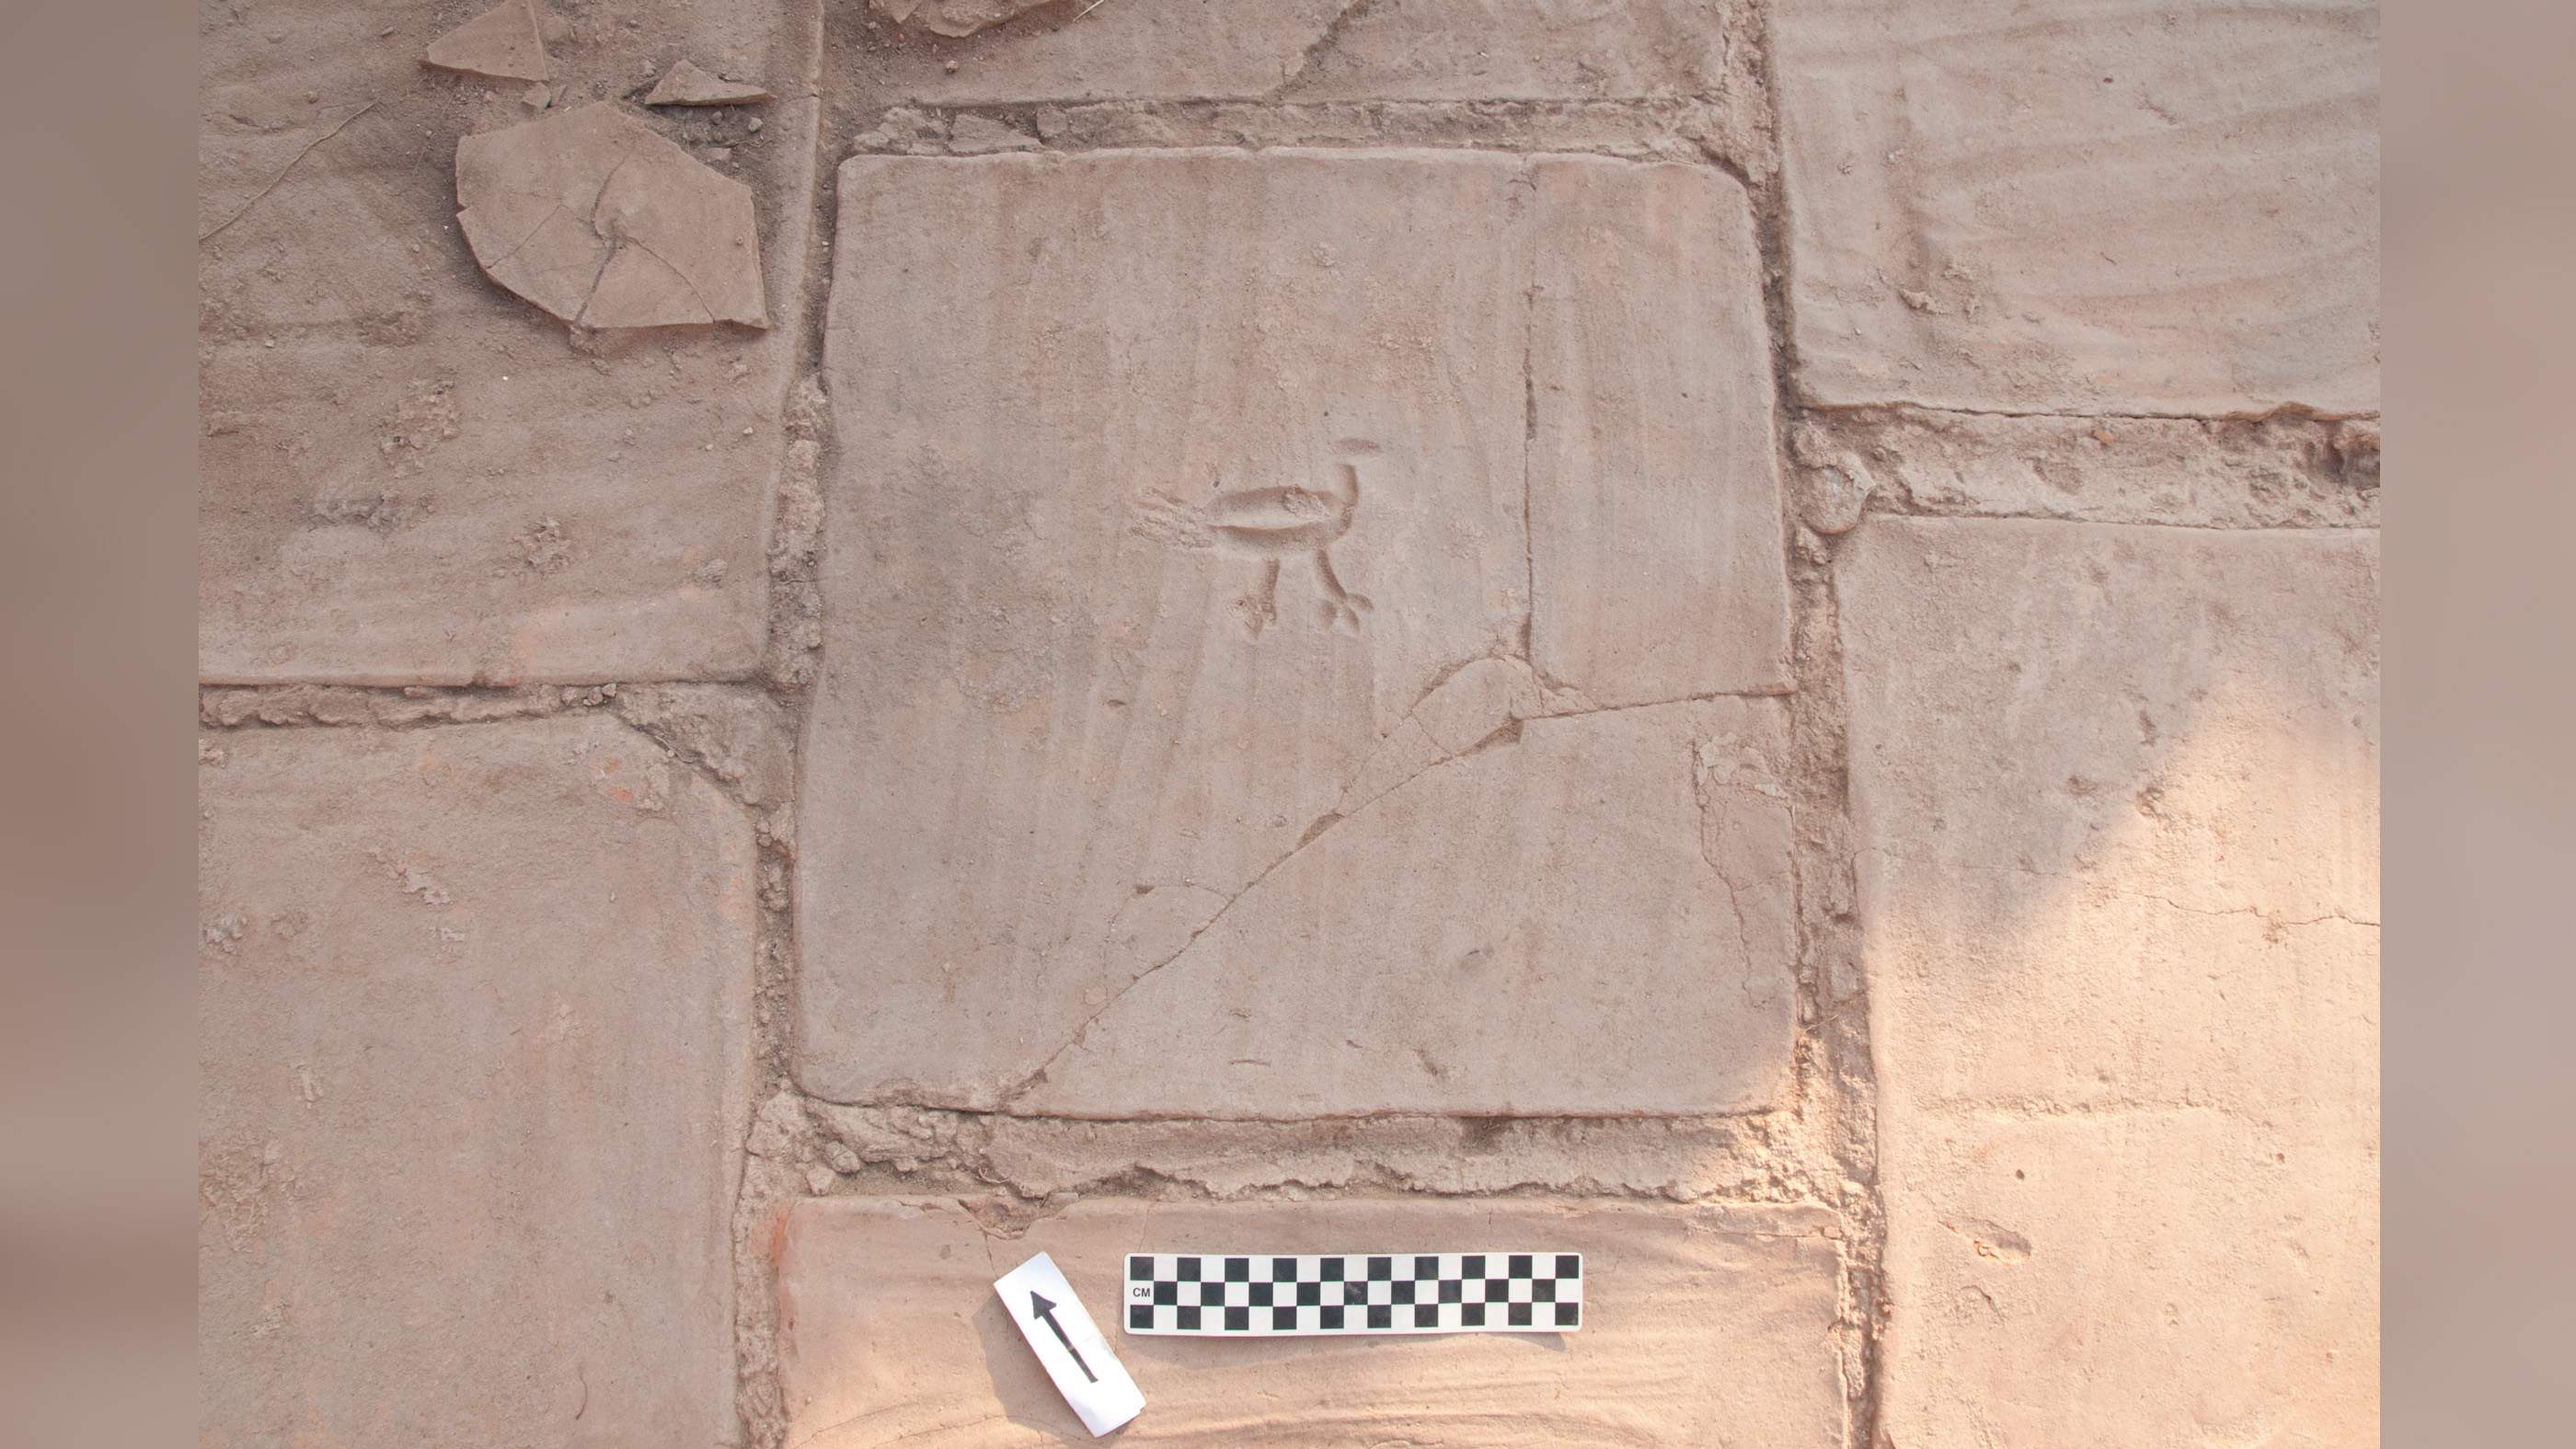 A bird/chicken was carved into a terracotta floor tile prior to firing.